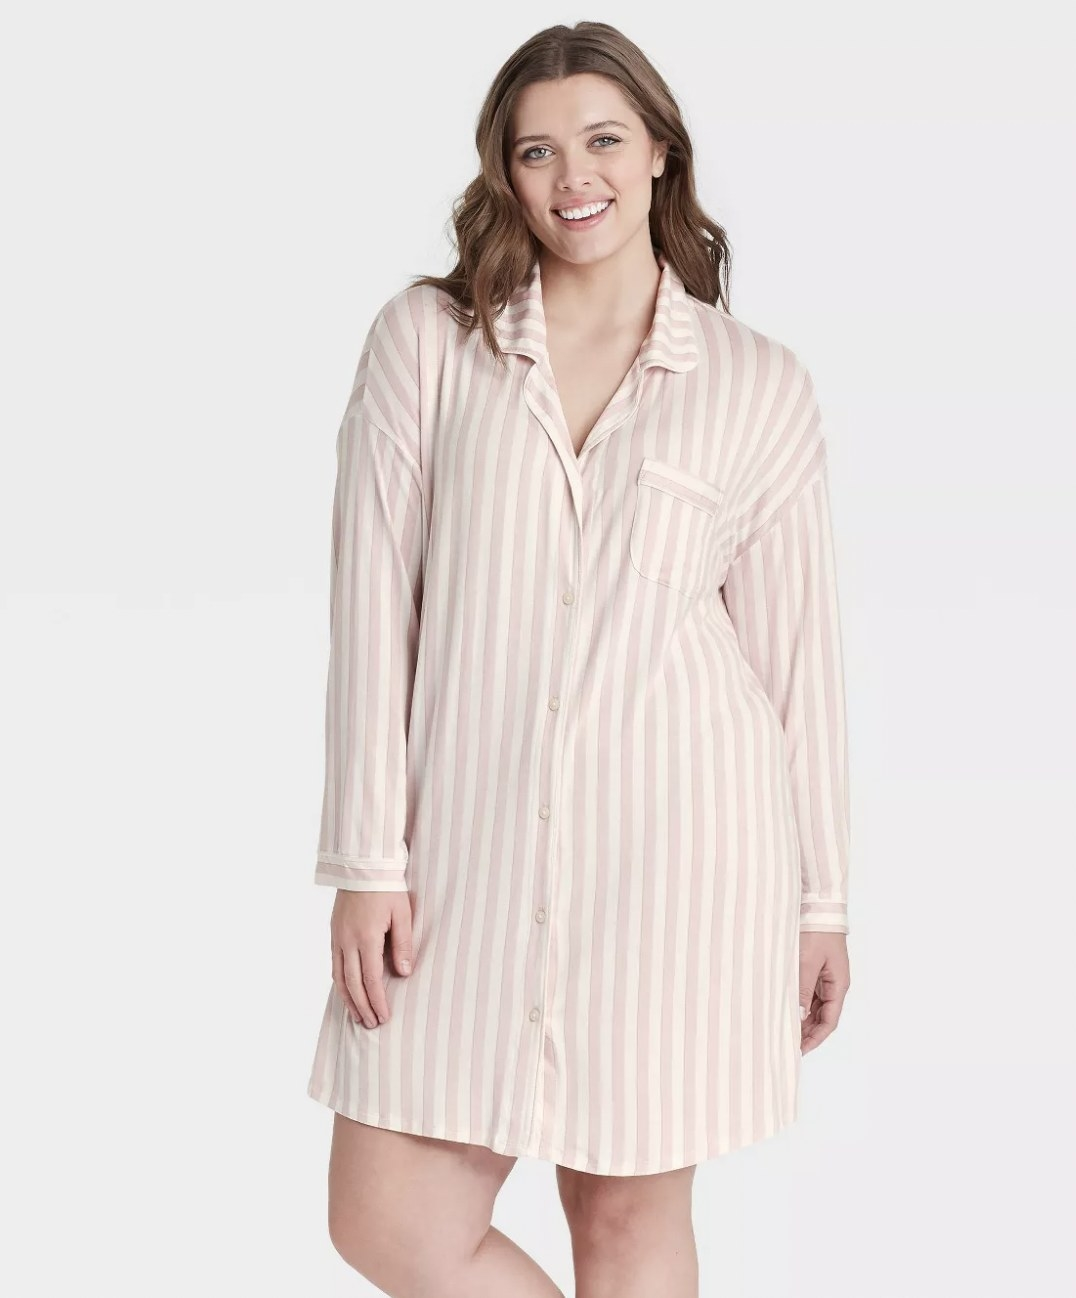 A model wearing a striped, long sleeved nightgown